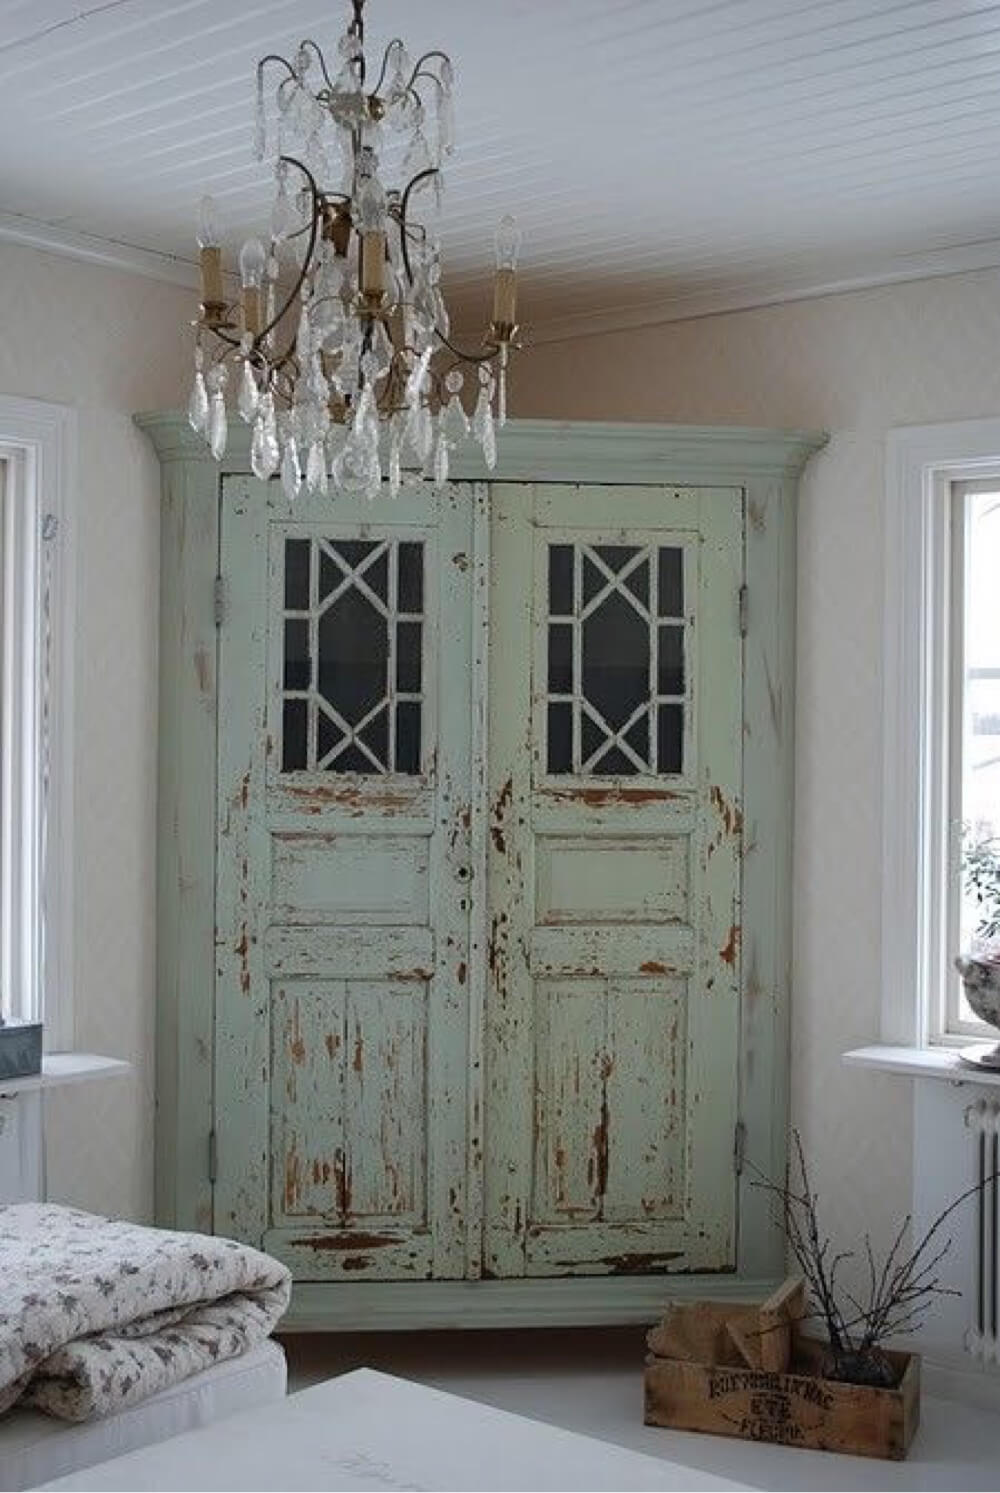 4. Custom Corner Wardrobe Made From Distressed Doors